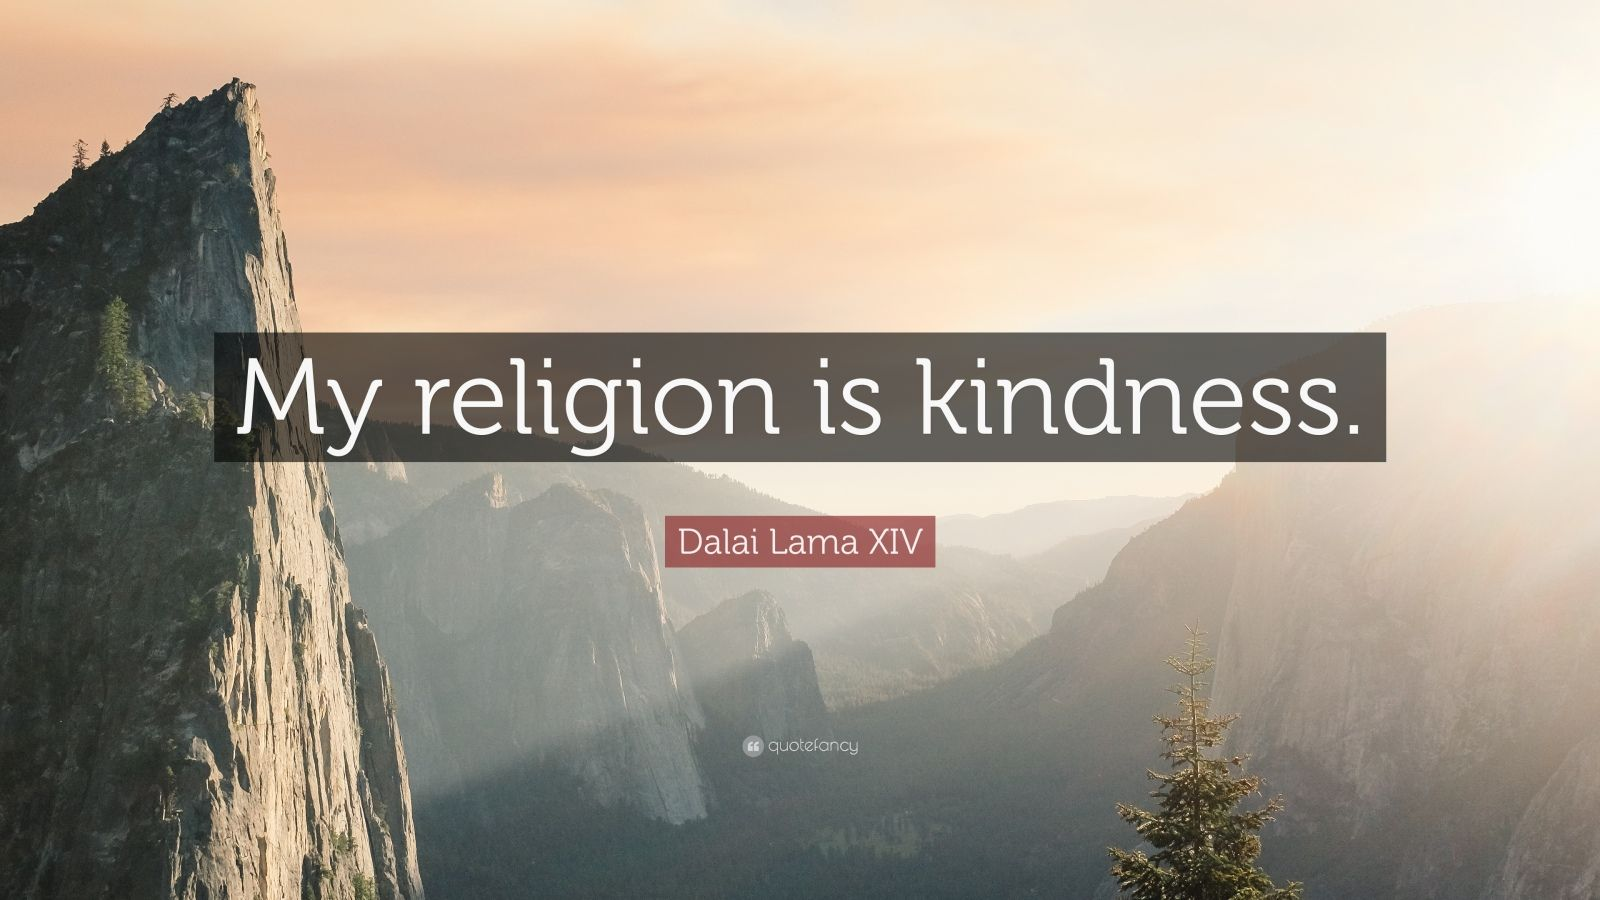 Motivational Quotes On Attitude Wallpapers Dalai Lama Xiv Quote My Religion Is Kindness 16